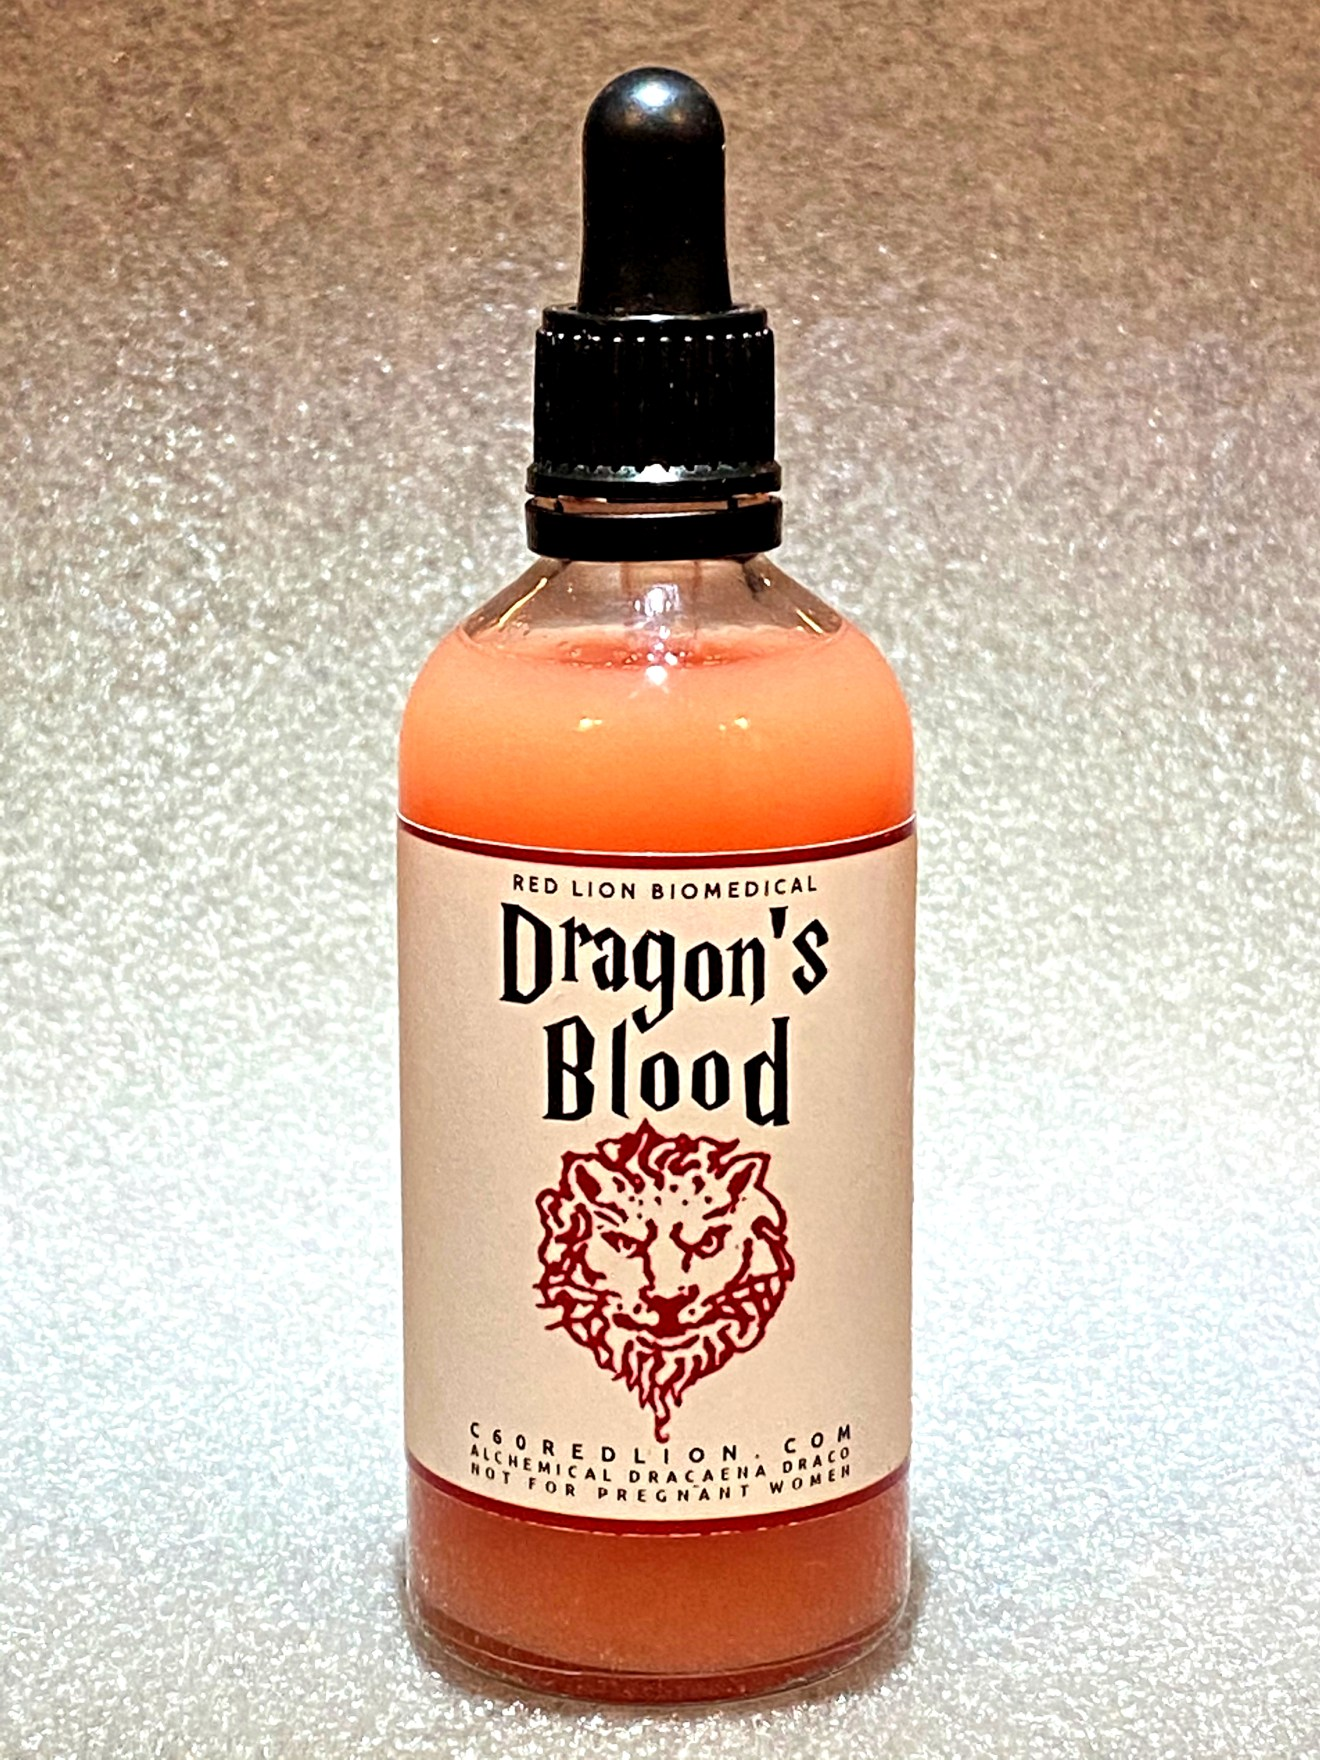 dragons blood photo